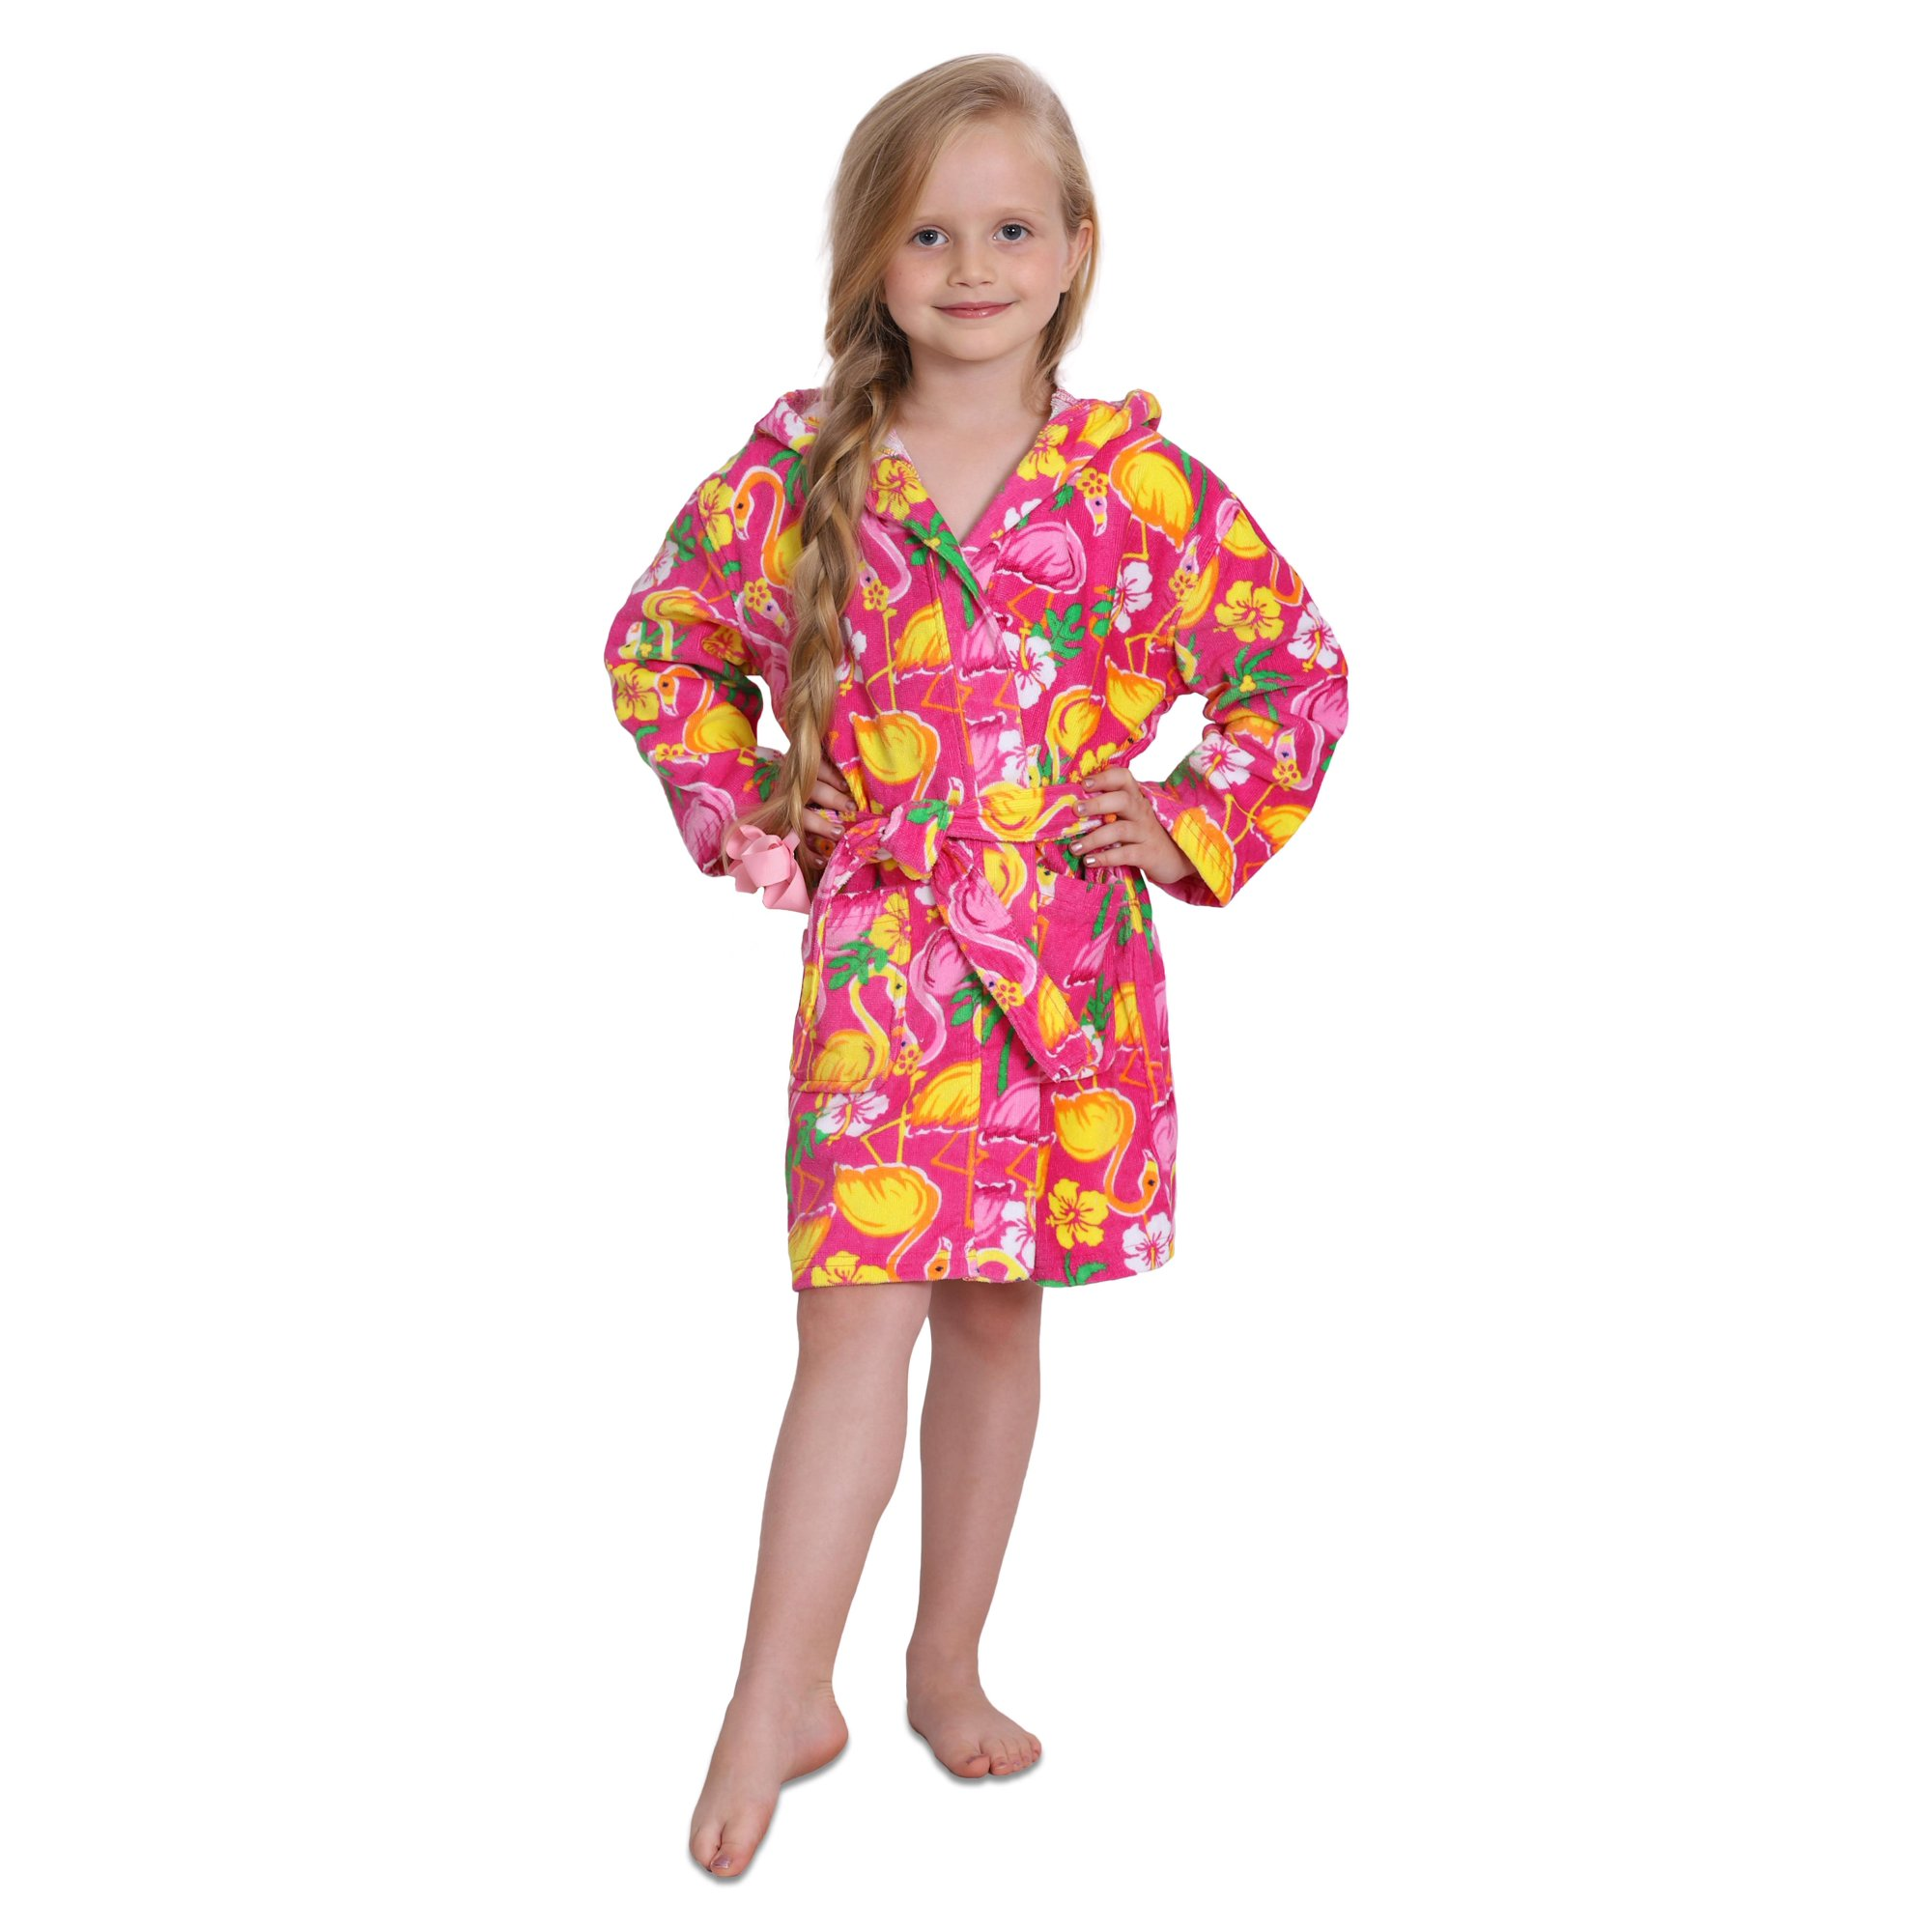 d6260bc68f7bf Komar Kids Girls Cotton Hooded Terry Robe Cover Up, Kids Sizes 3-12 |  Walmart Canada